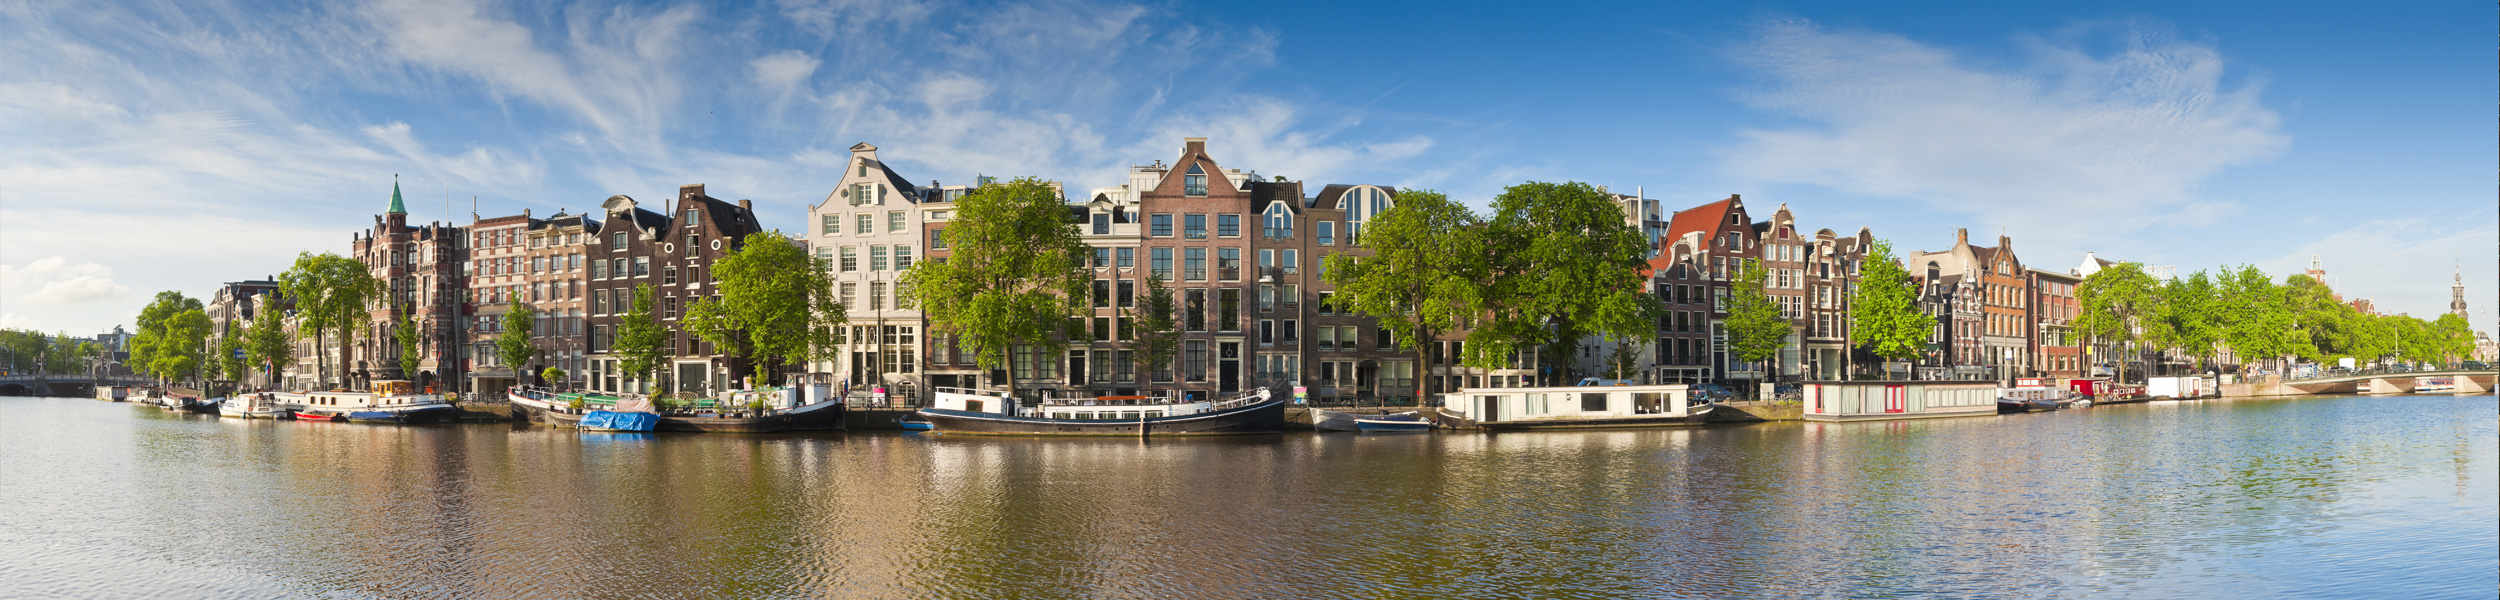 .NET Software Developer Amsterdam, The Netherlands